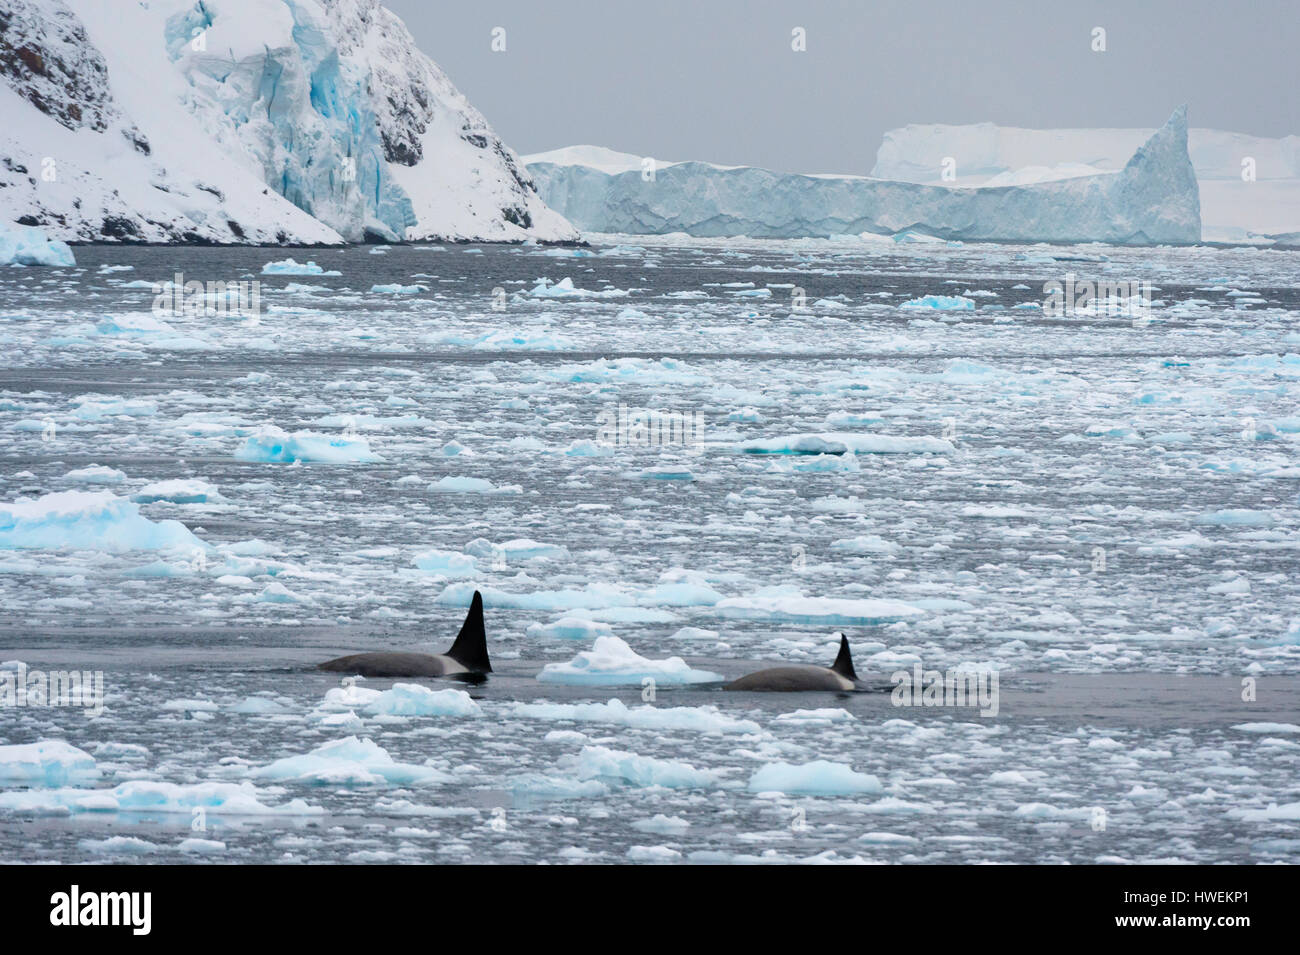 Orcas (Orcinus orca) swimming in Lemaire channel, Antarctic - Stock Image